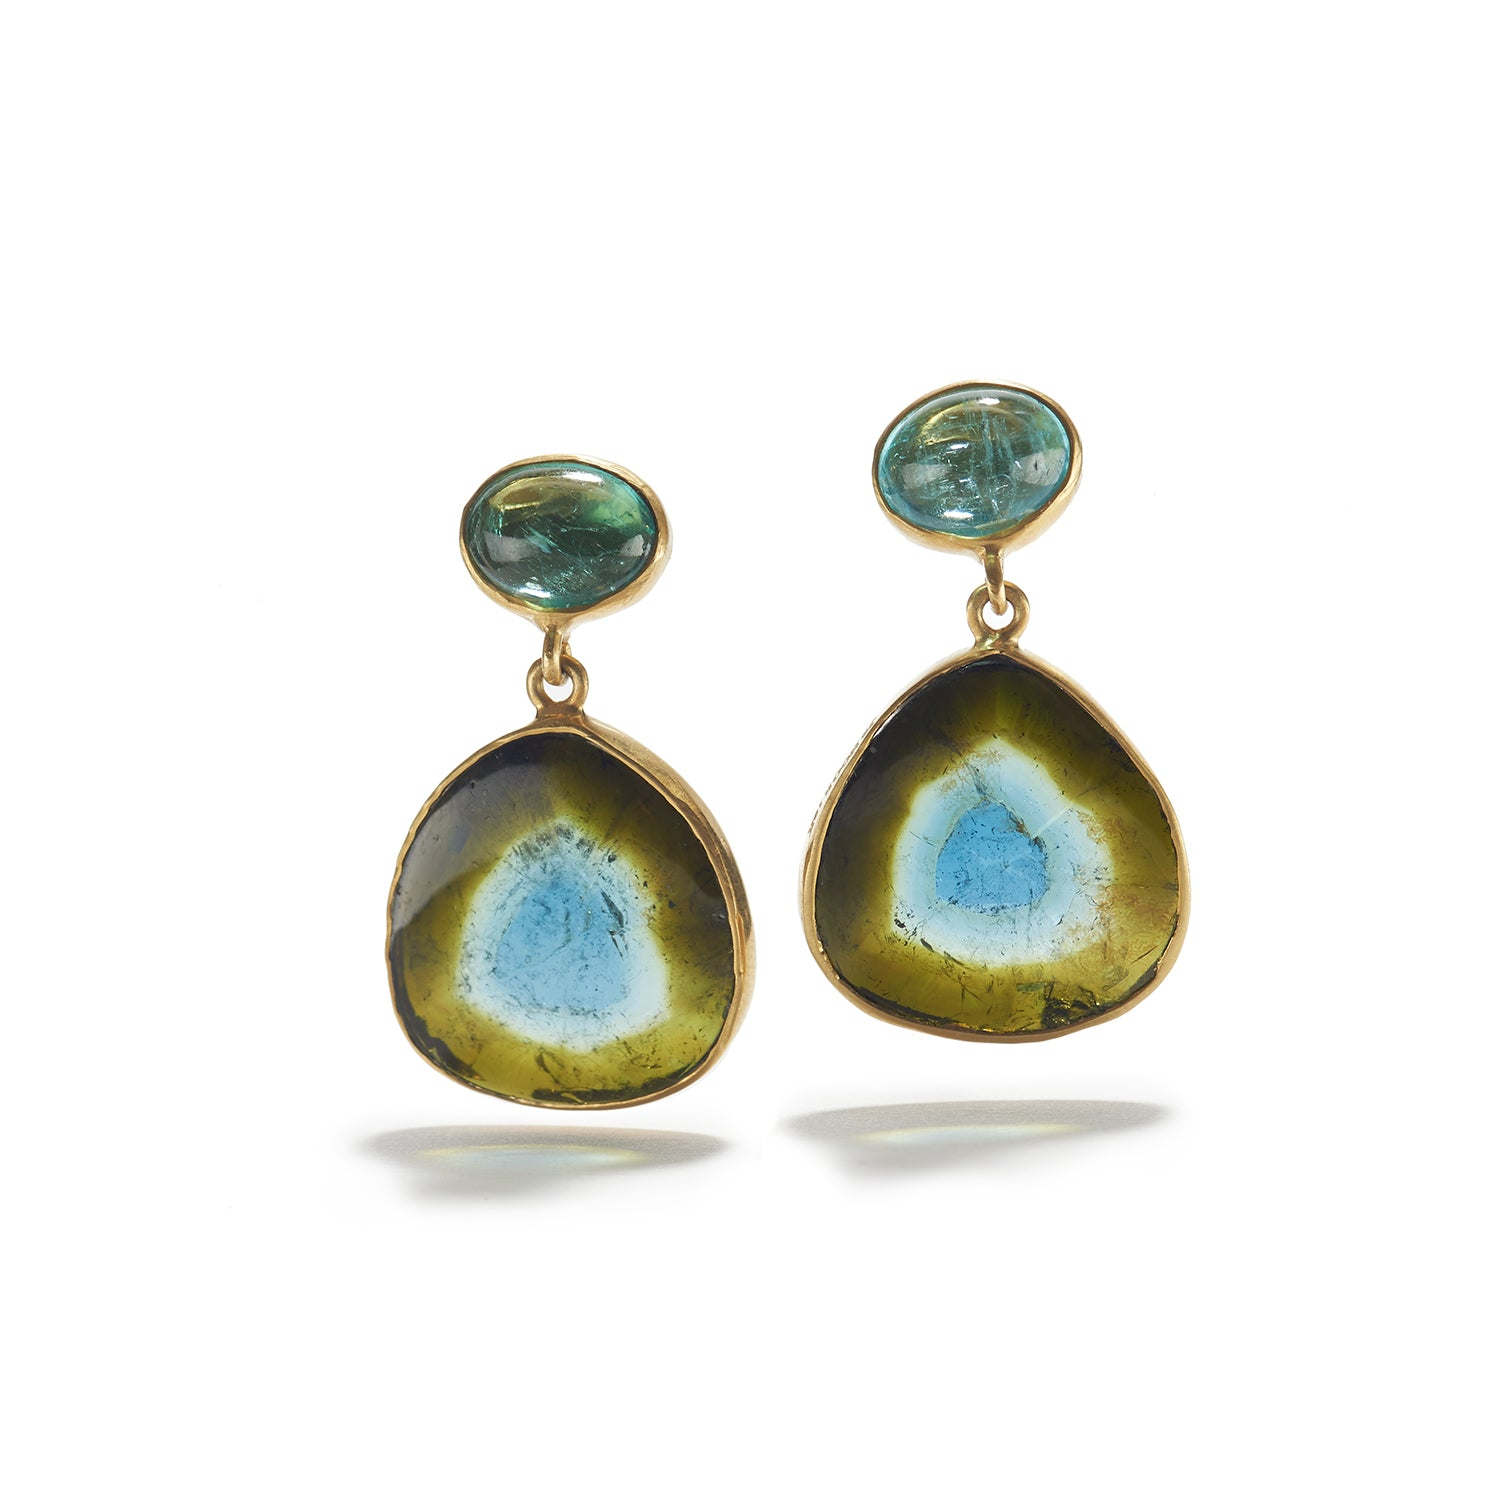 Blue/Green Watermelon Tourmaline Earrings